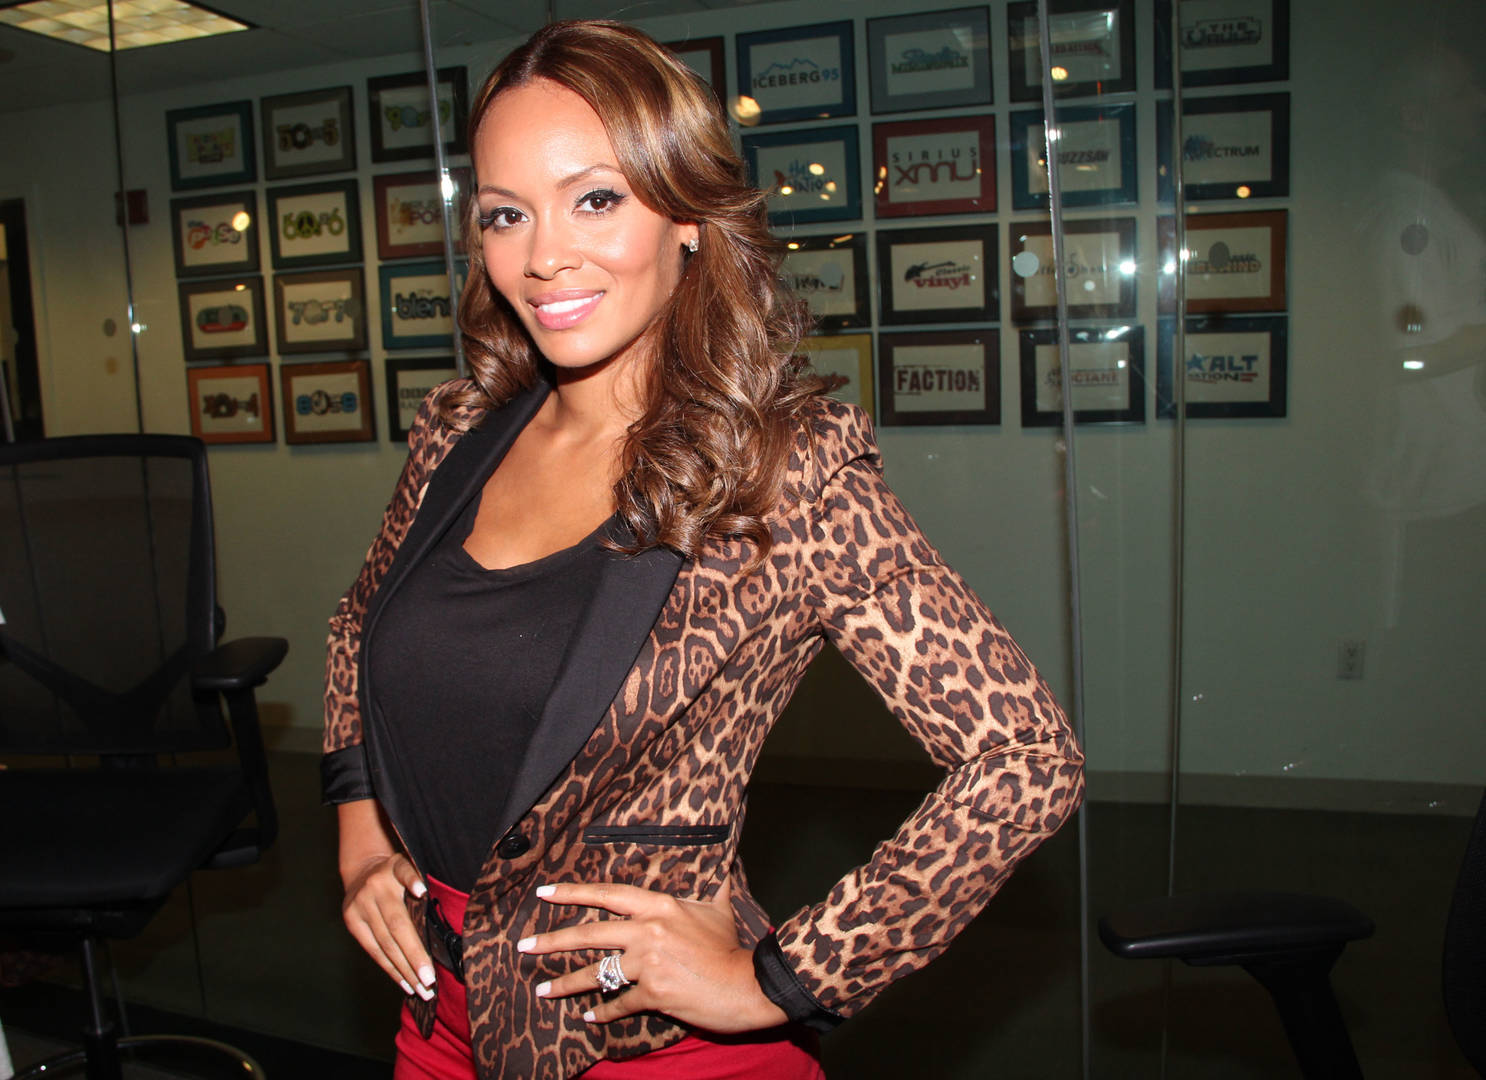 """Evelyn Lozada To File Restraining Order Against """"Basketball Wives"""" Co-Star: Report"""